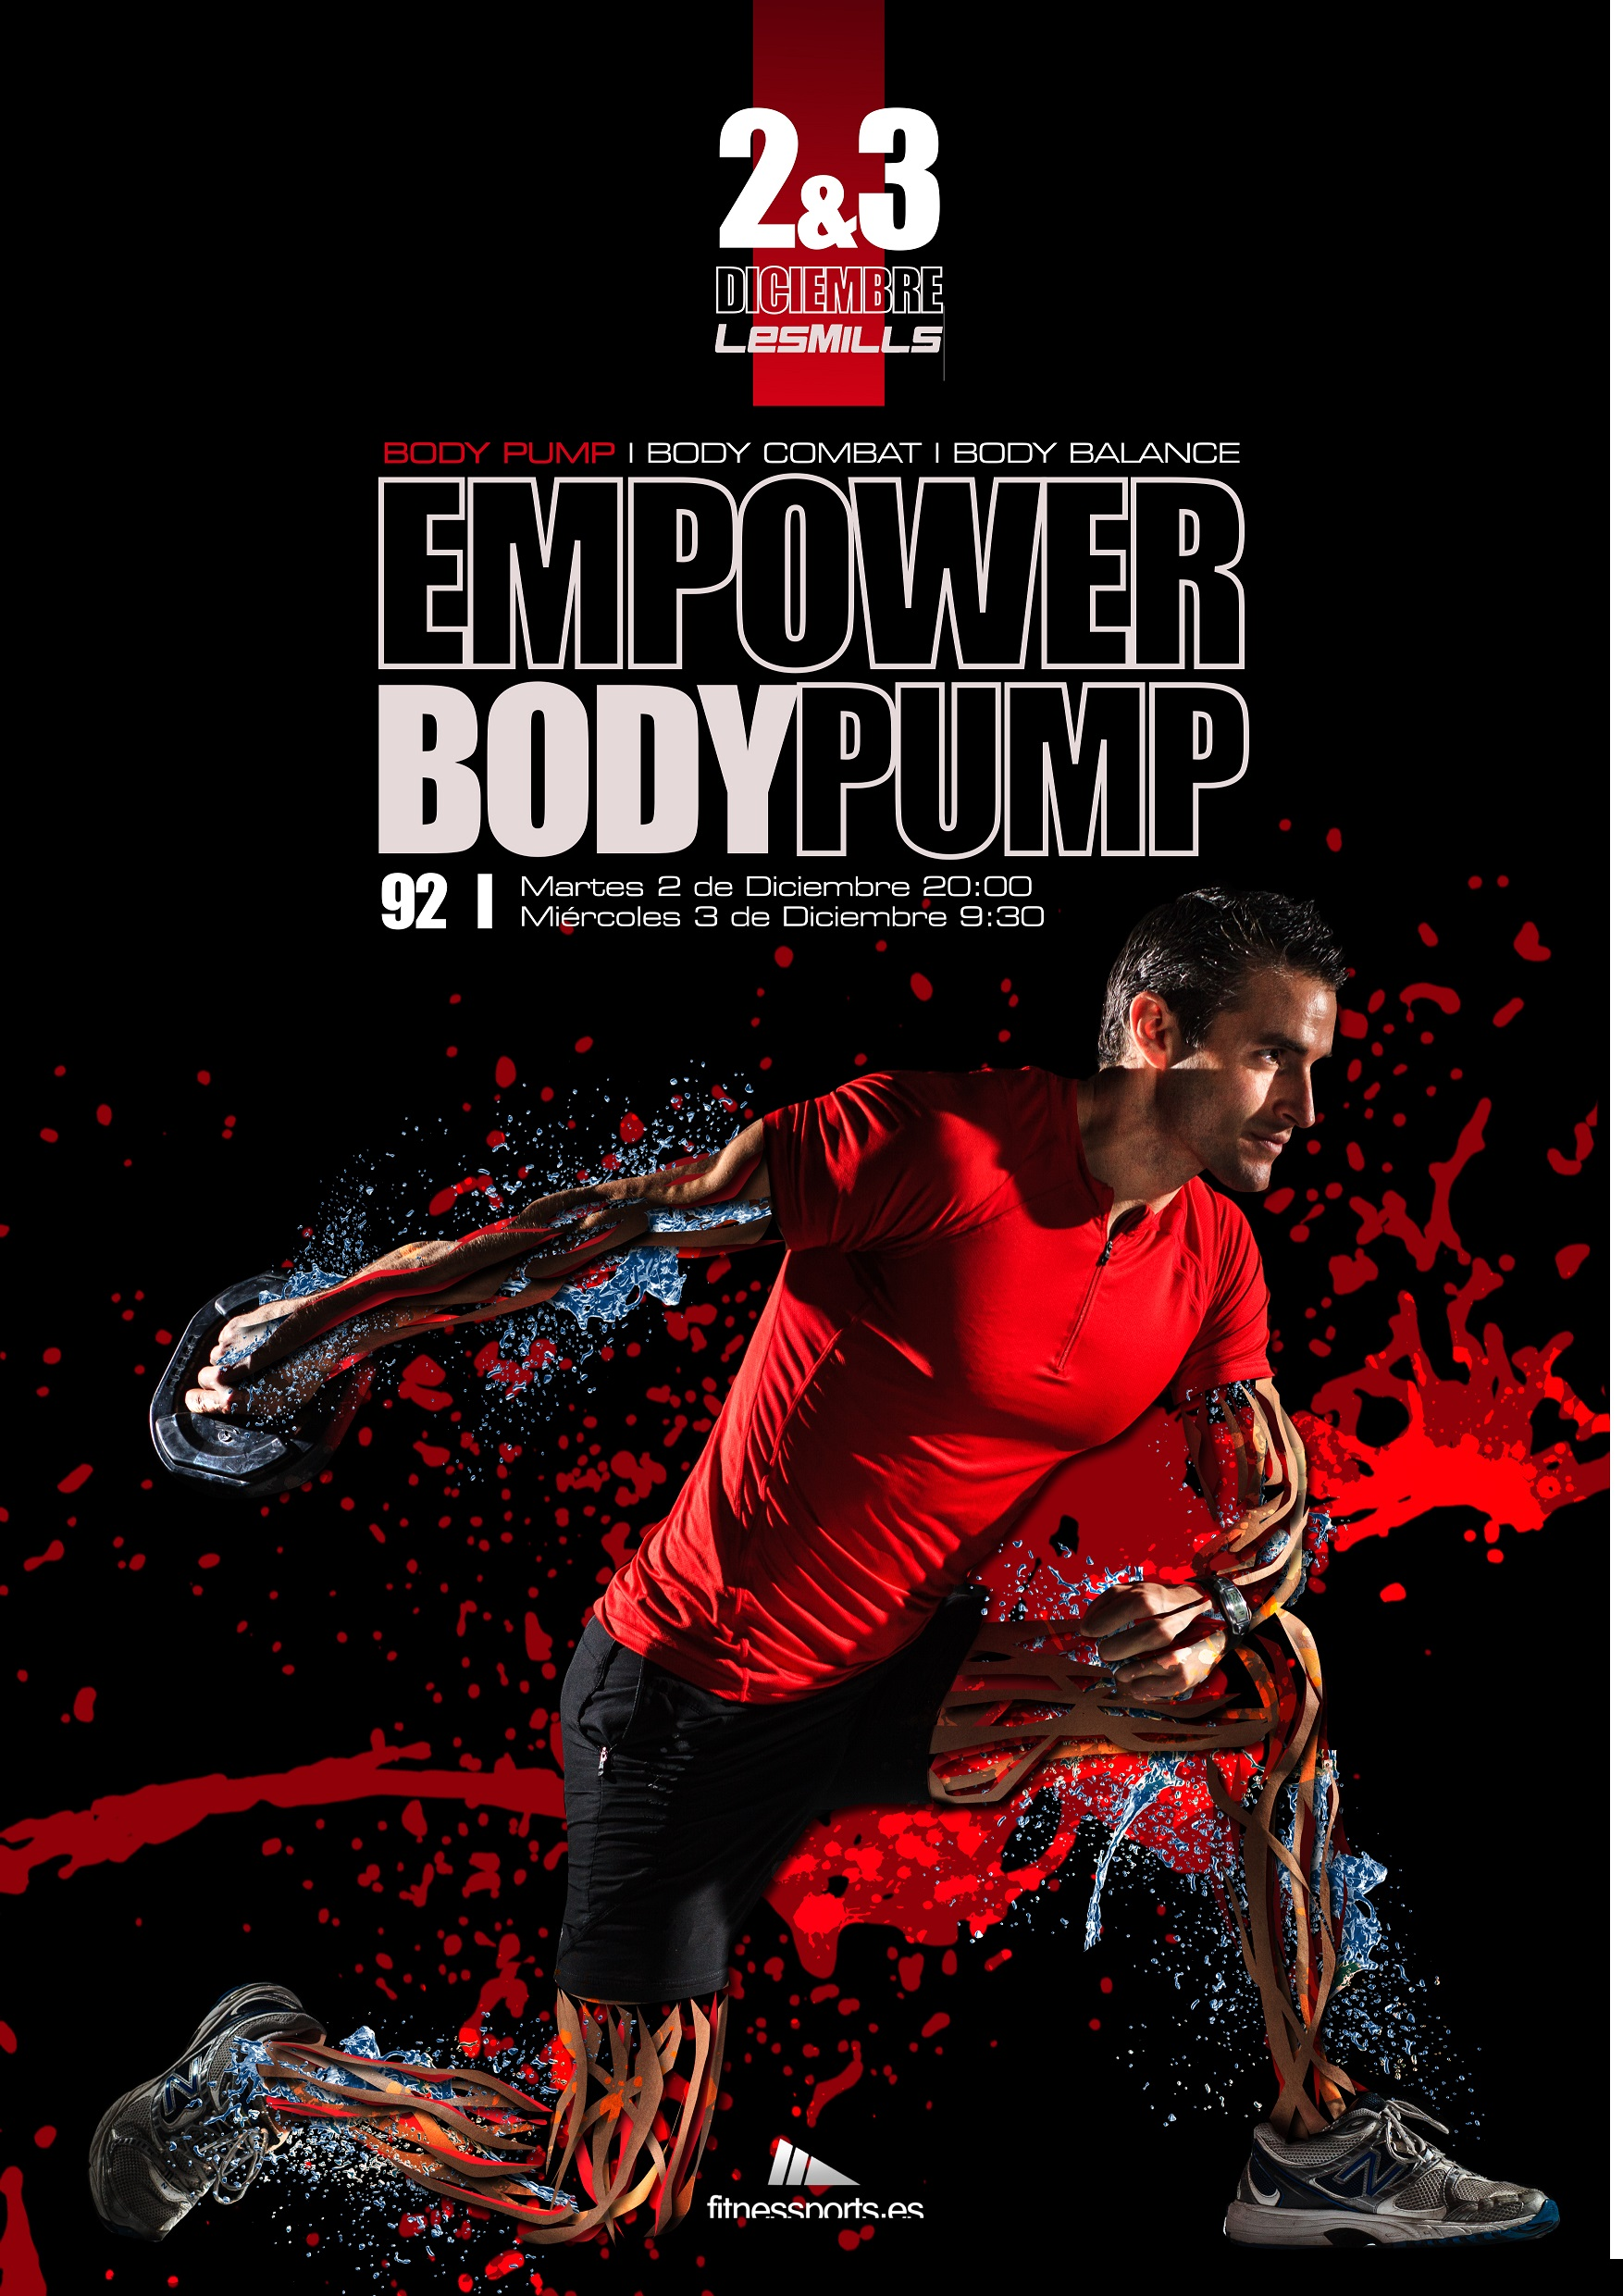 https://www.perfectpixel.es/wp-content/uploads/2014/11/Body-pump-92-New-Release-Les-Mills-Fitness-Sports-Valle-las-Ca%C3%B1as-by-PerfectPixel-Publicidad-Advertisement-LowRes2.jpg